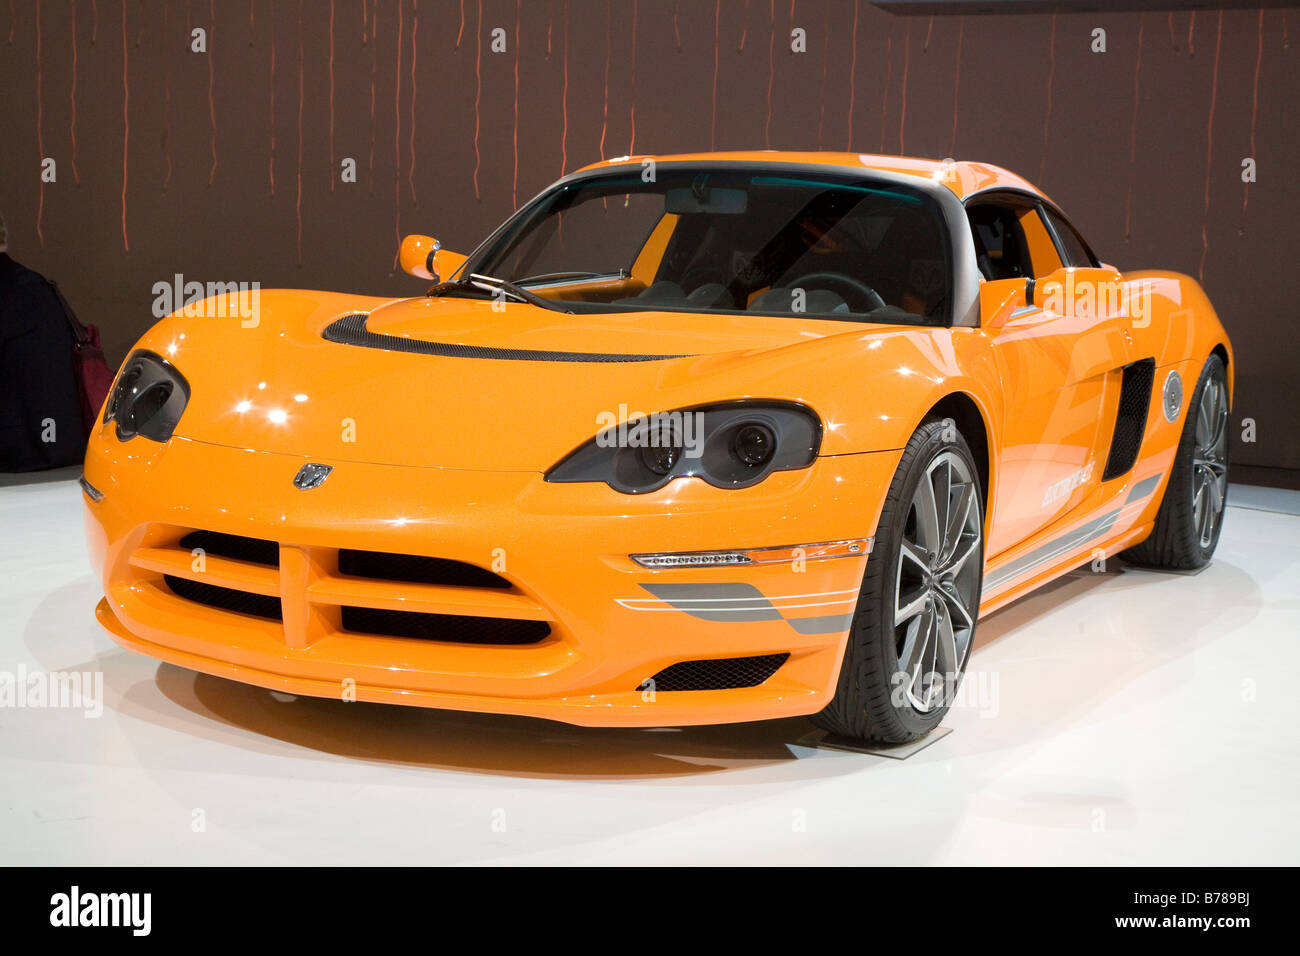 Dodge Circuit Prototype Electric Car - Stock Image